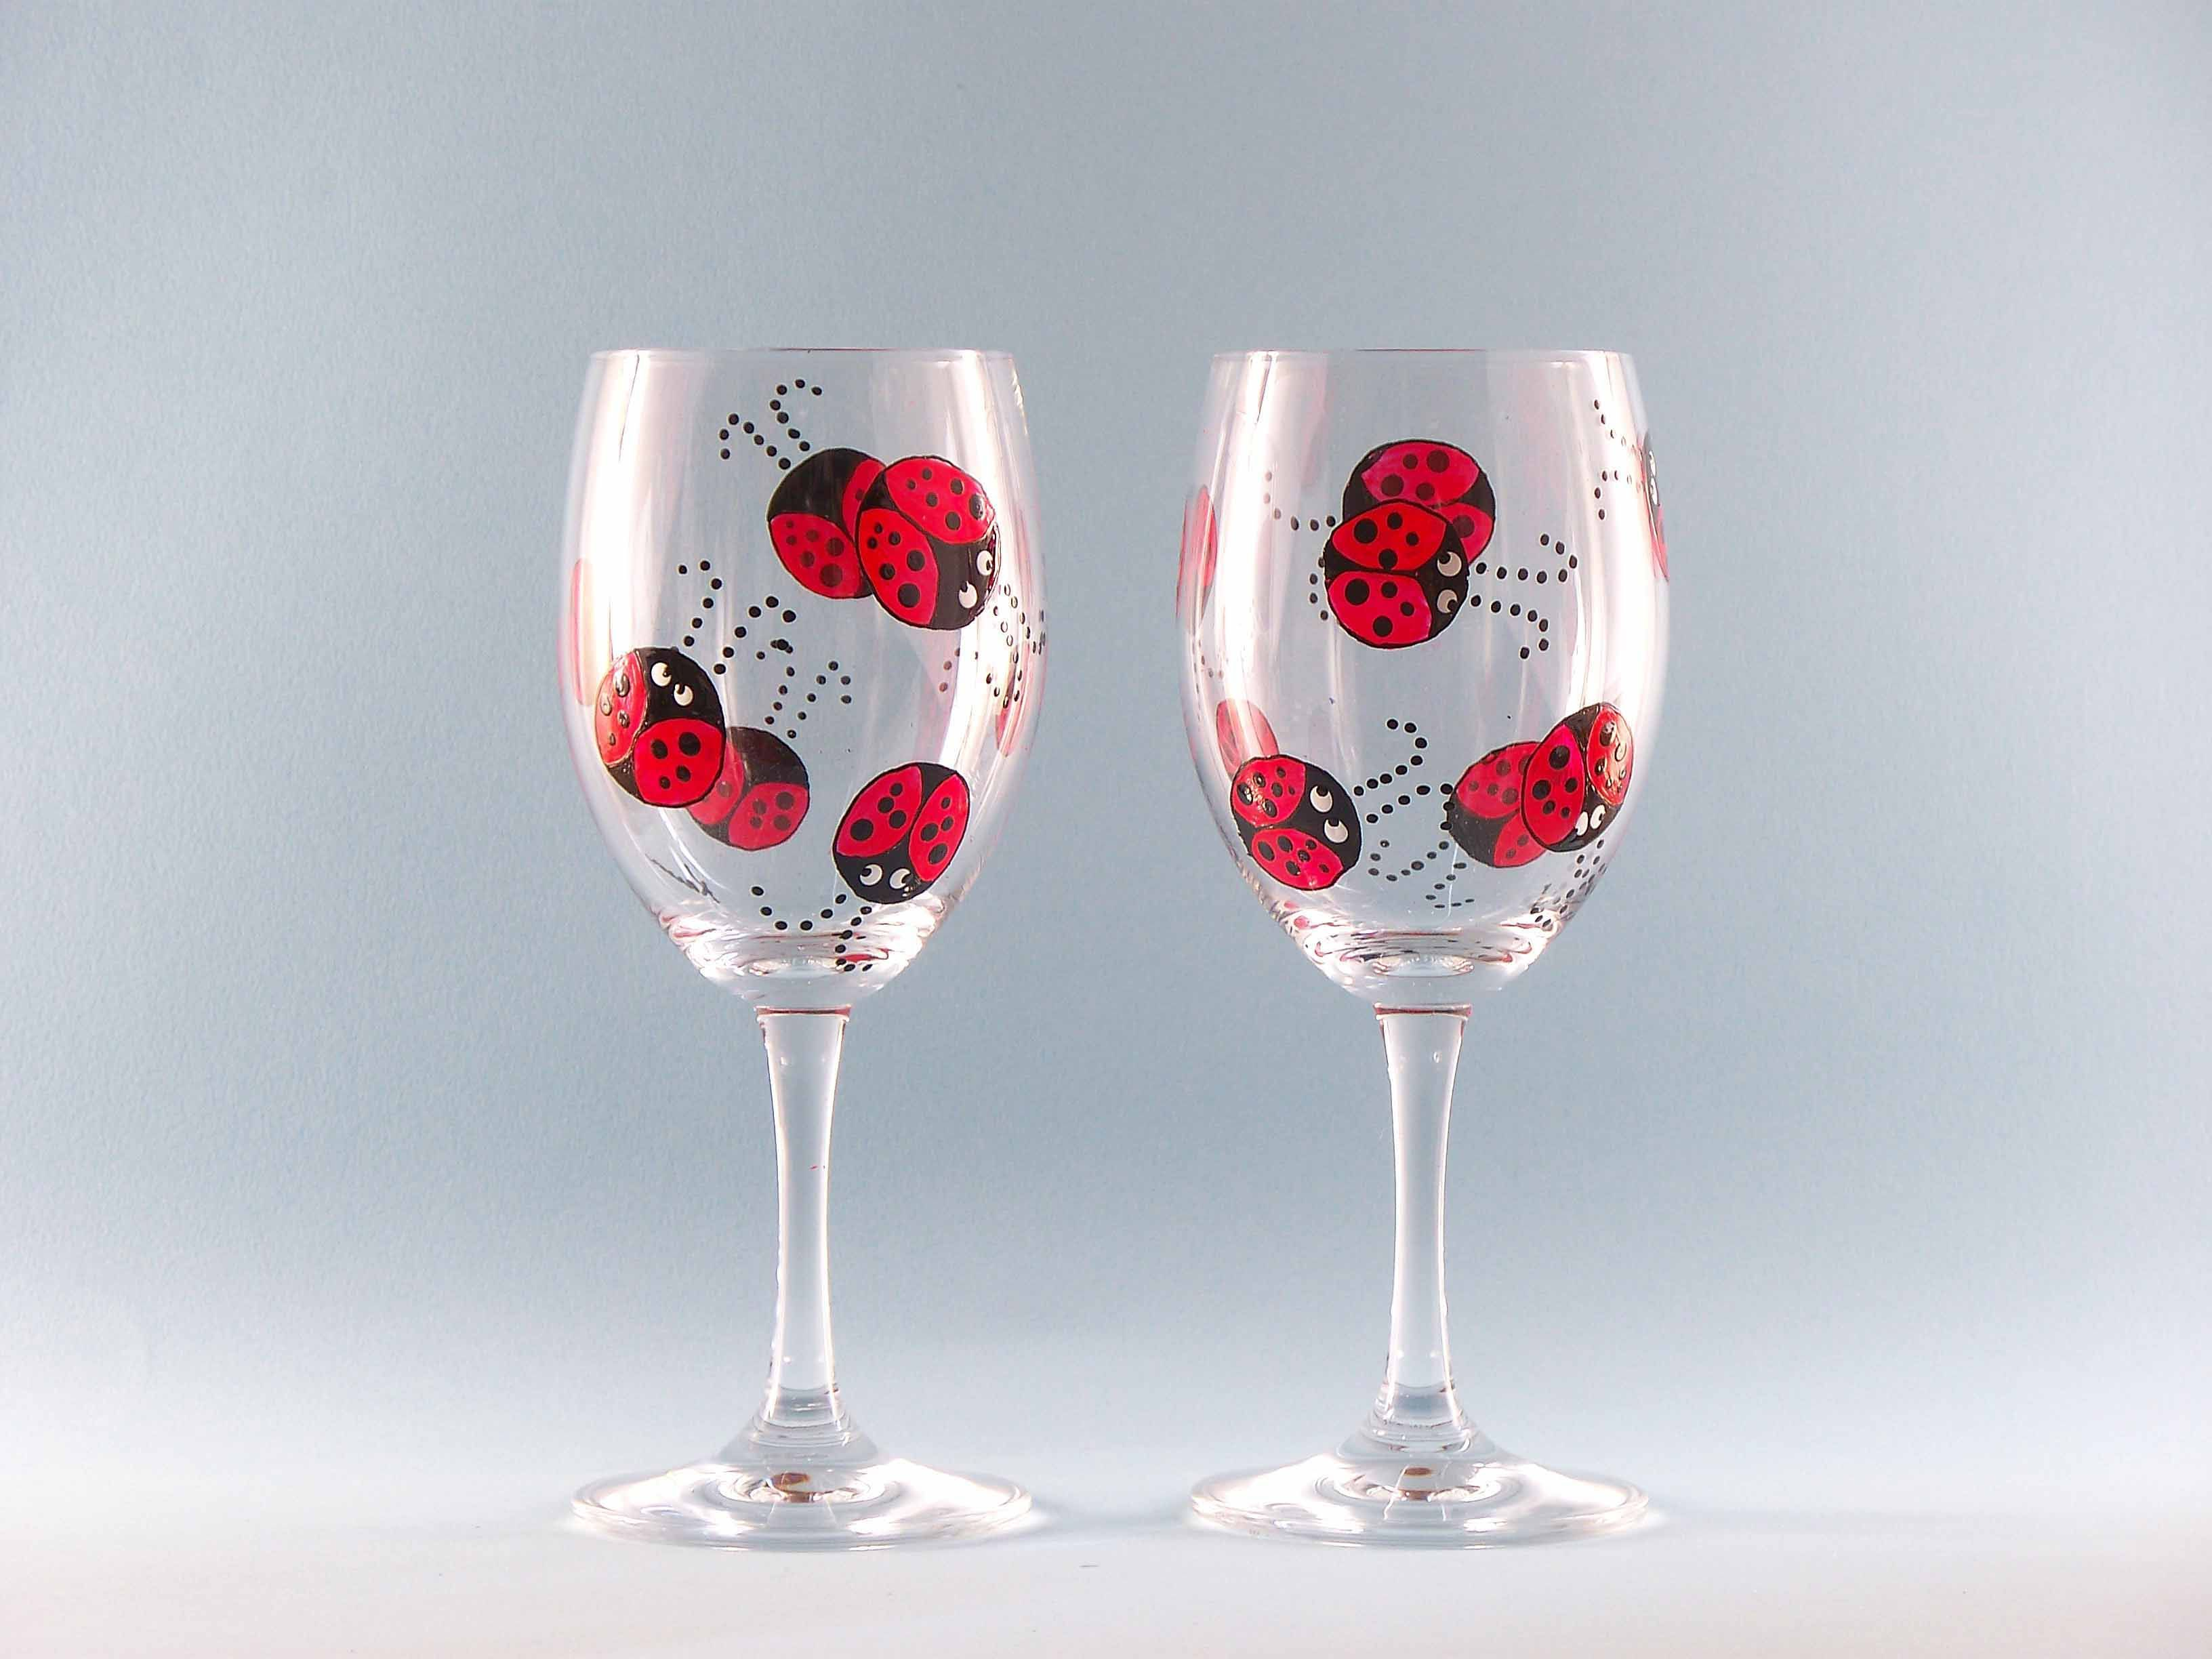 Hand painted ladybug wine glasses set of two glass Images of painted wine glasses